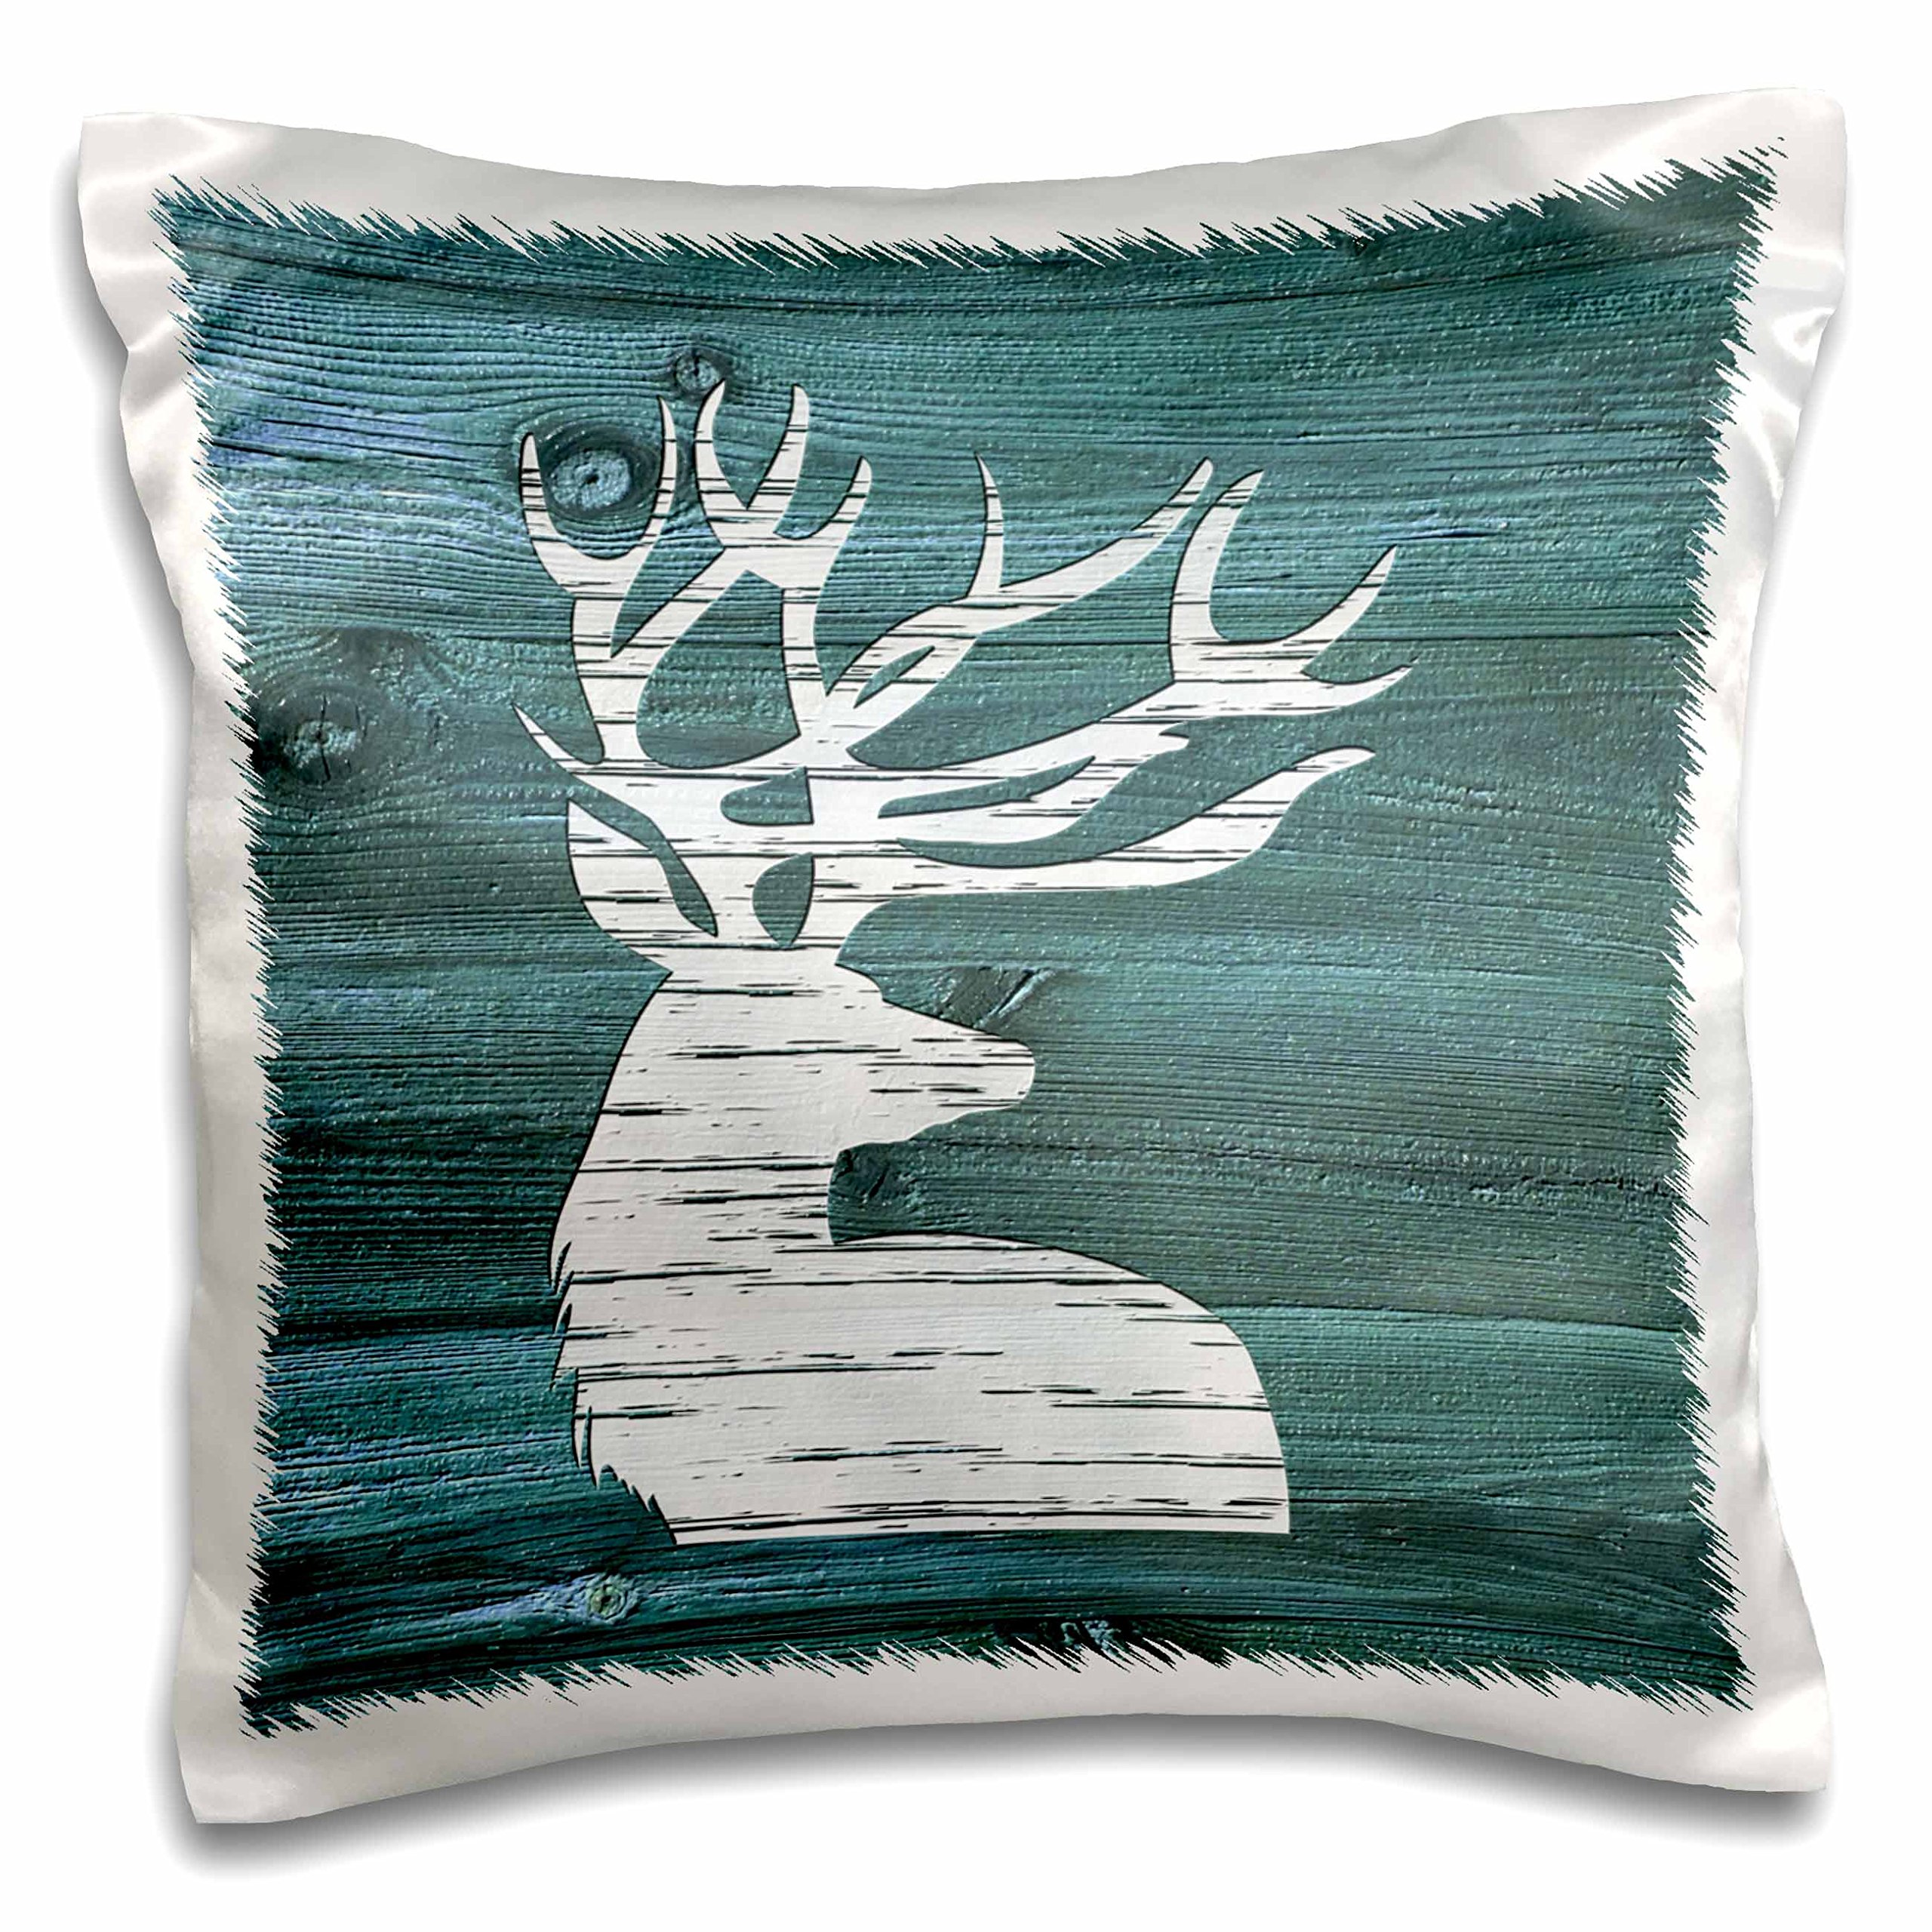 3dRose White Painted Stag with Antlers on Blue Weatherboard-Not Real Wood Pillow Case, 16 x 16''